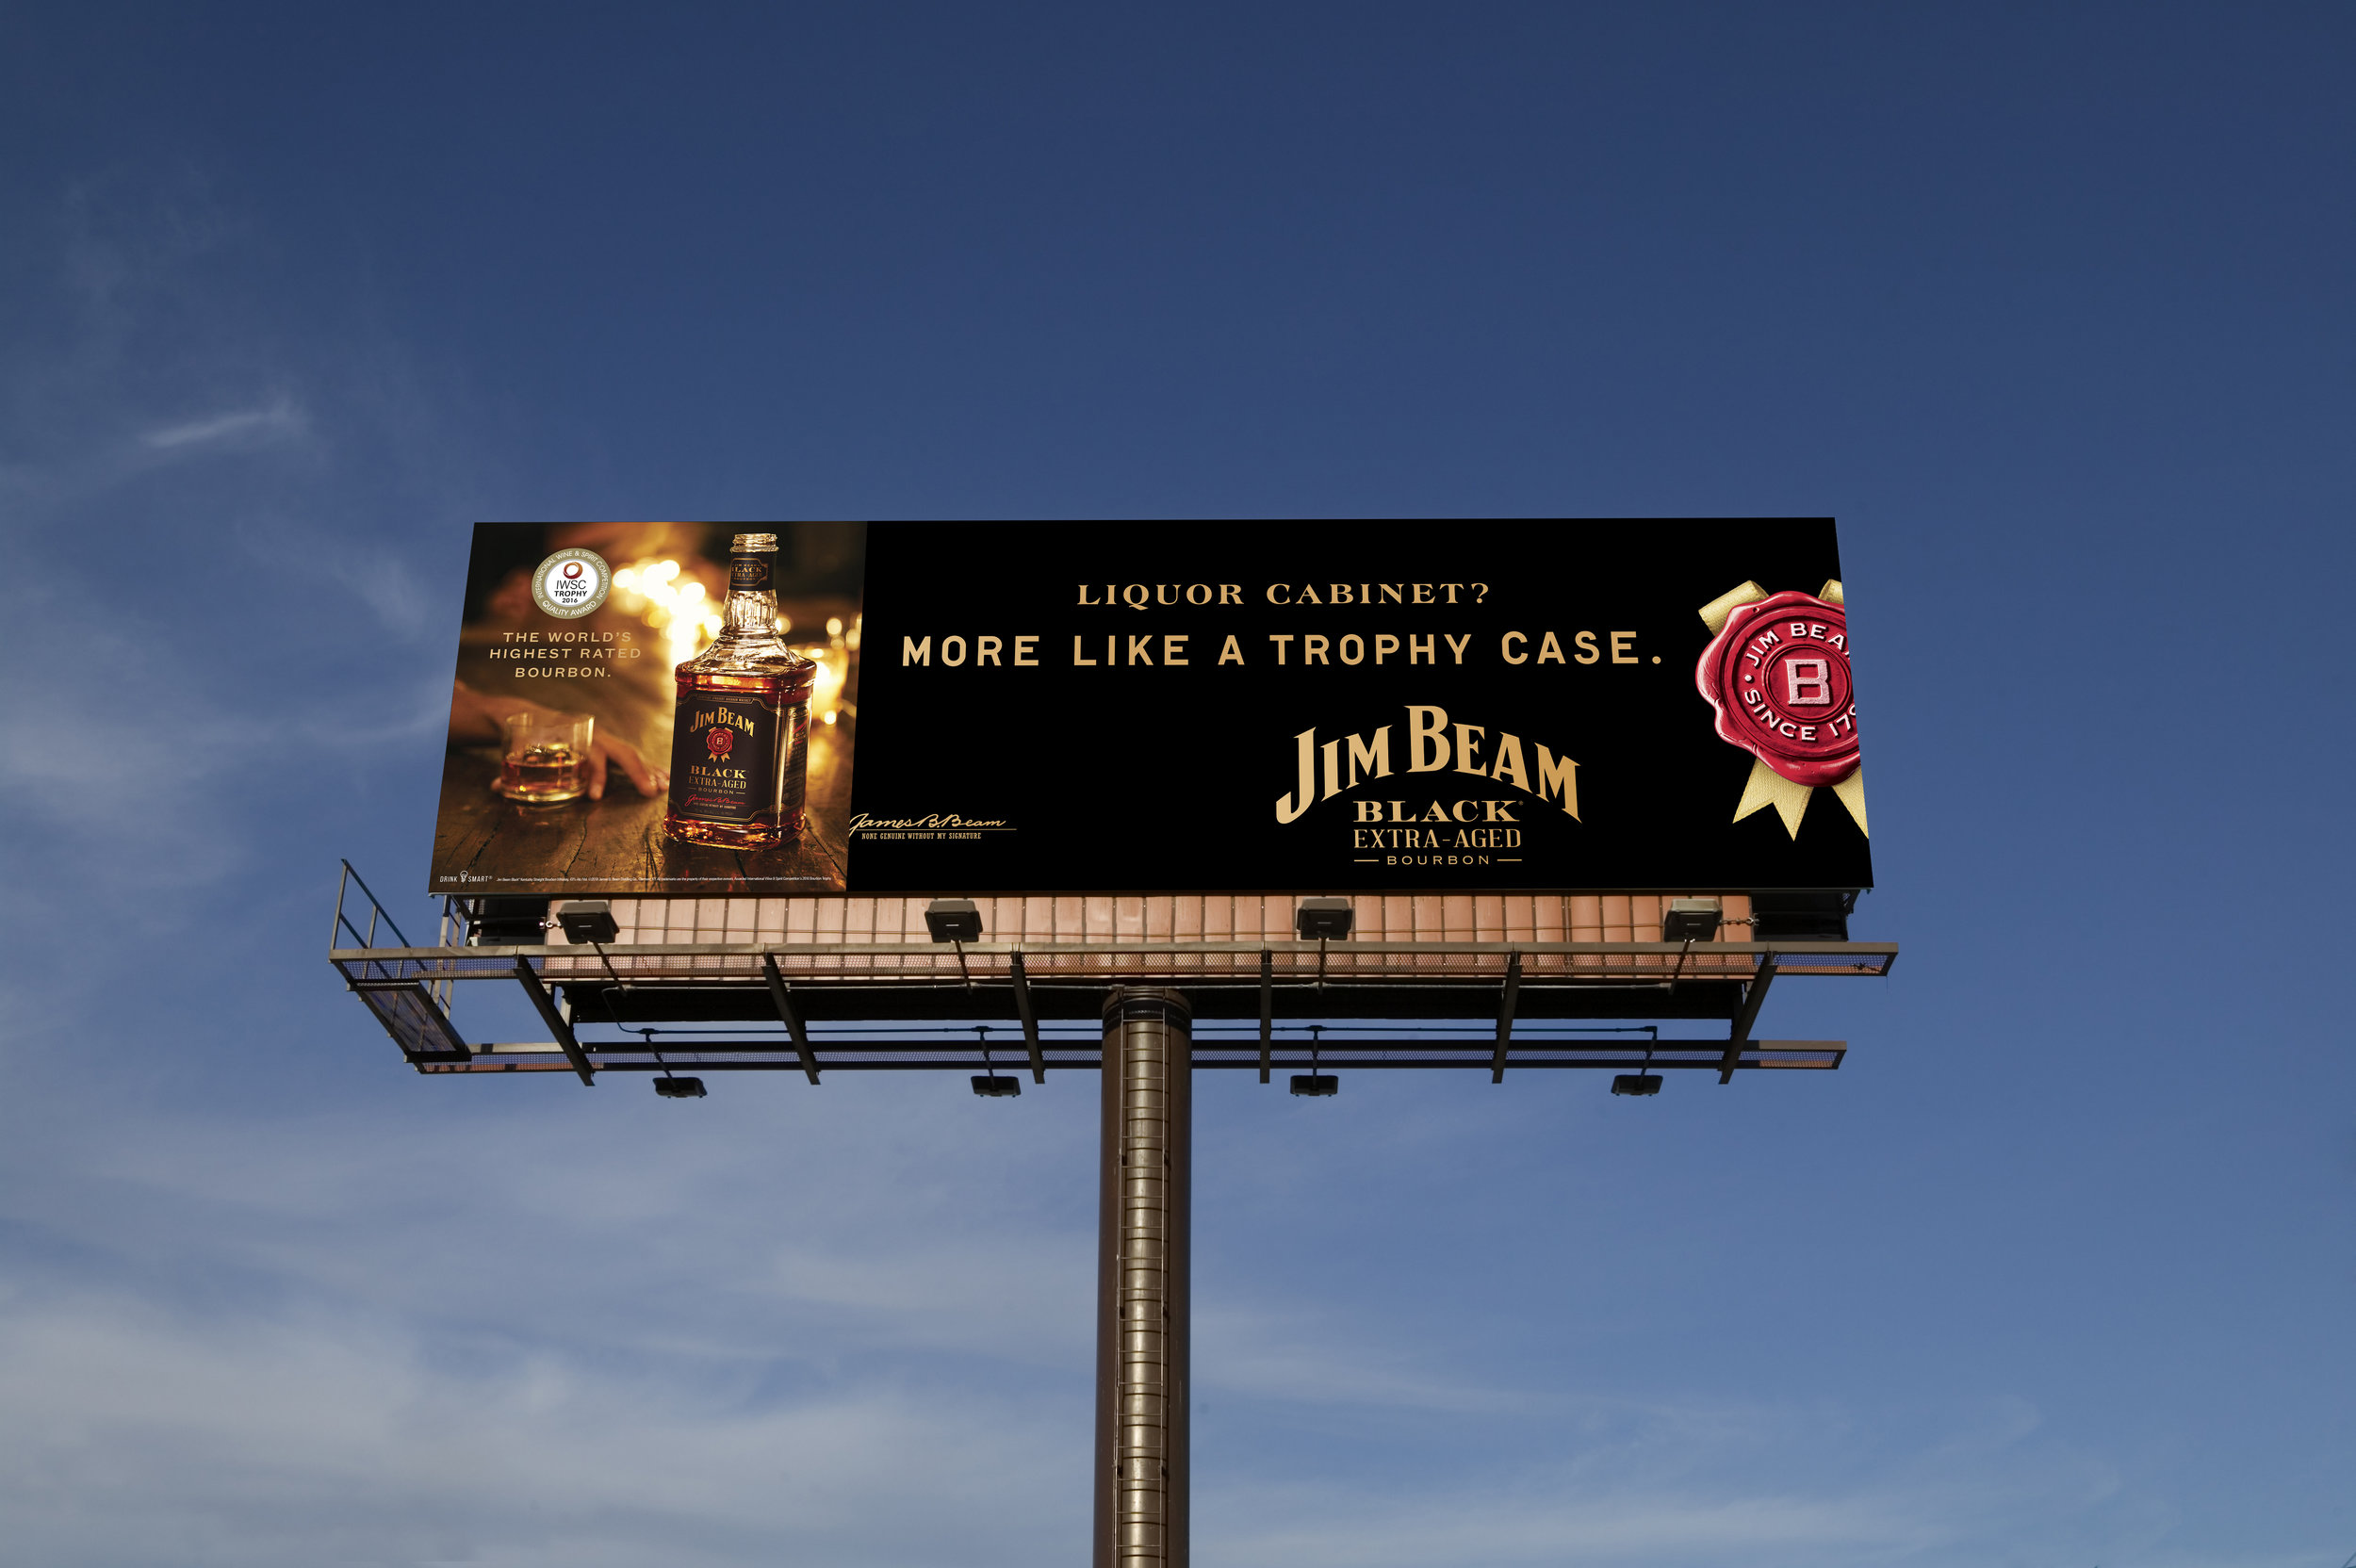 Jim_Beam_Black_OOH_14x48.jpg